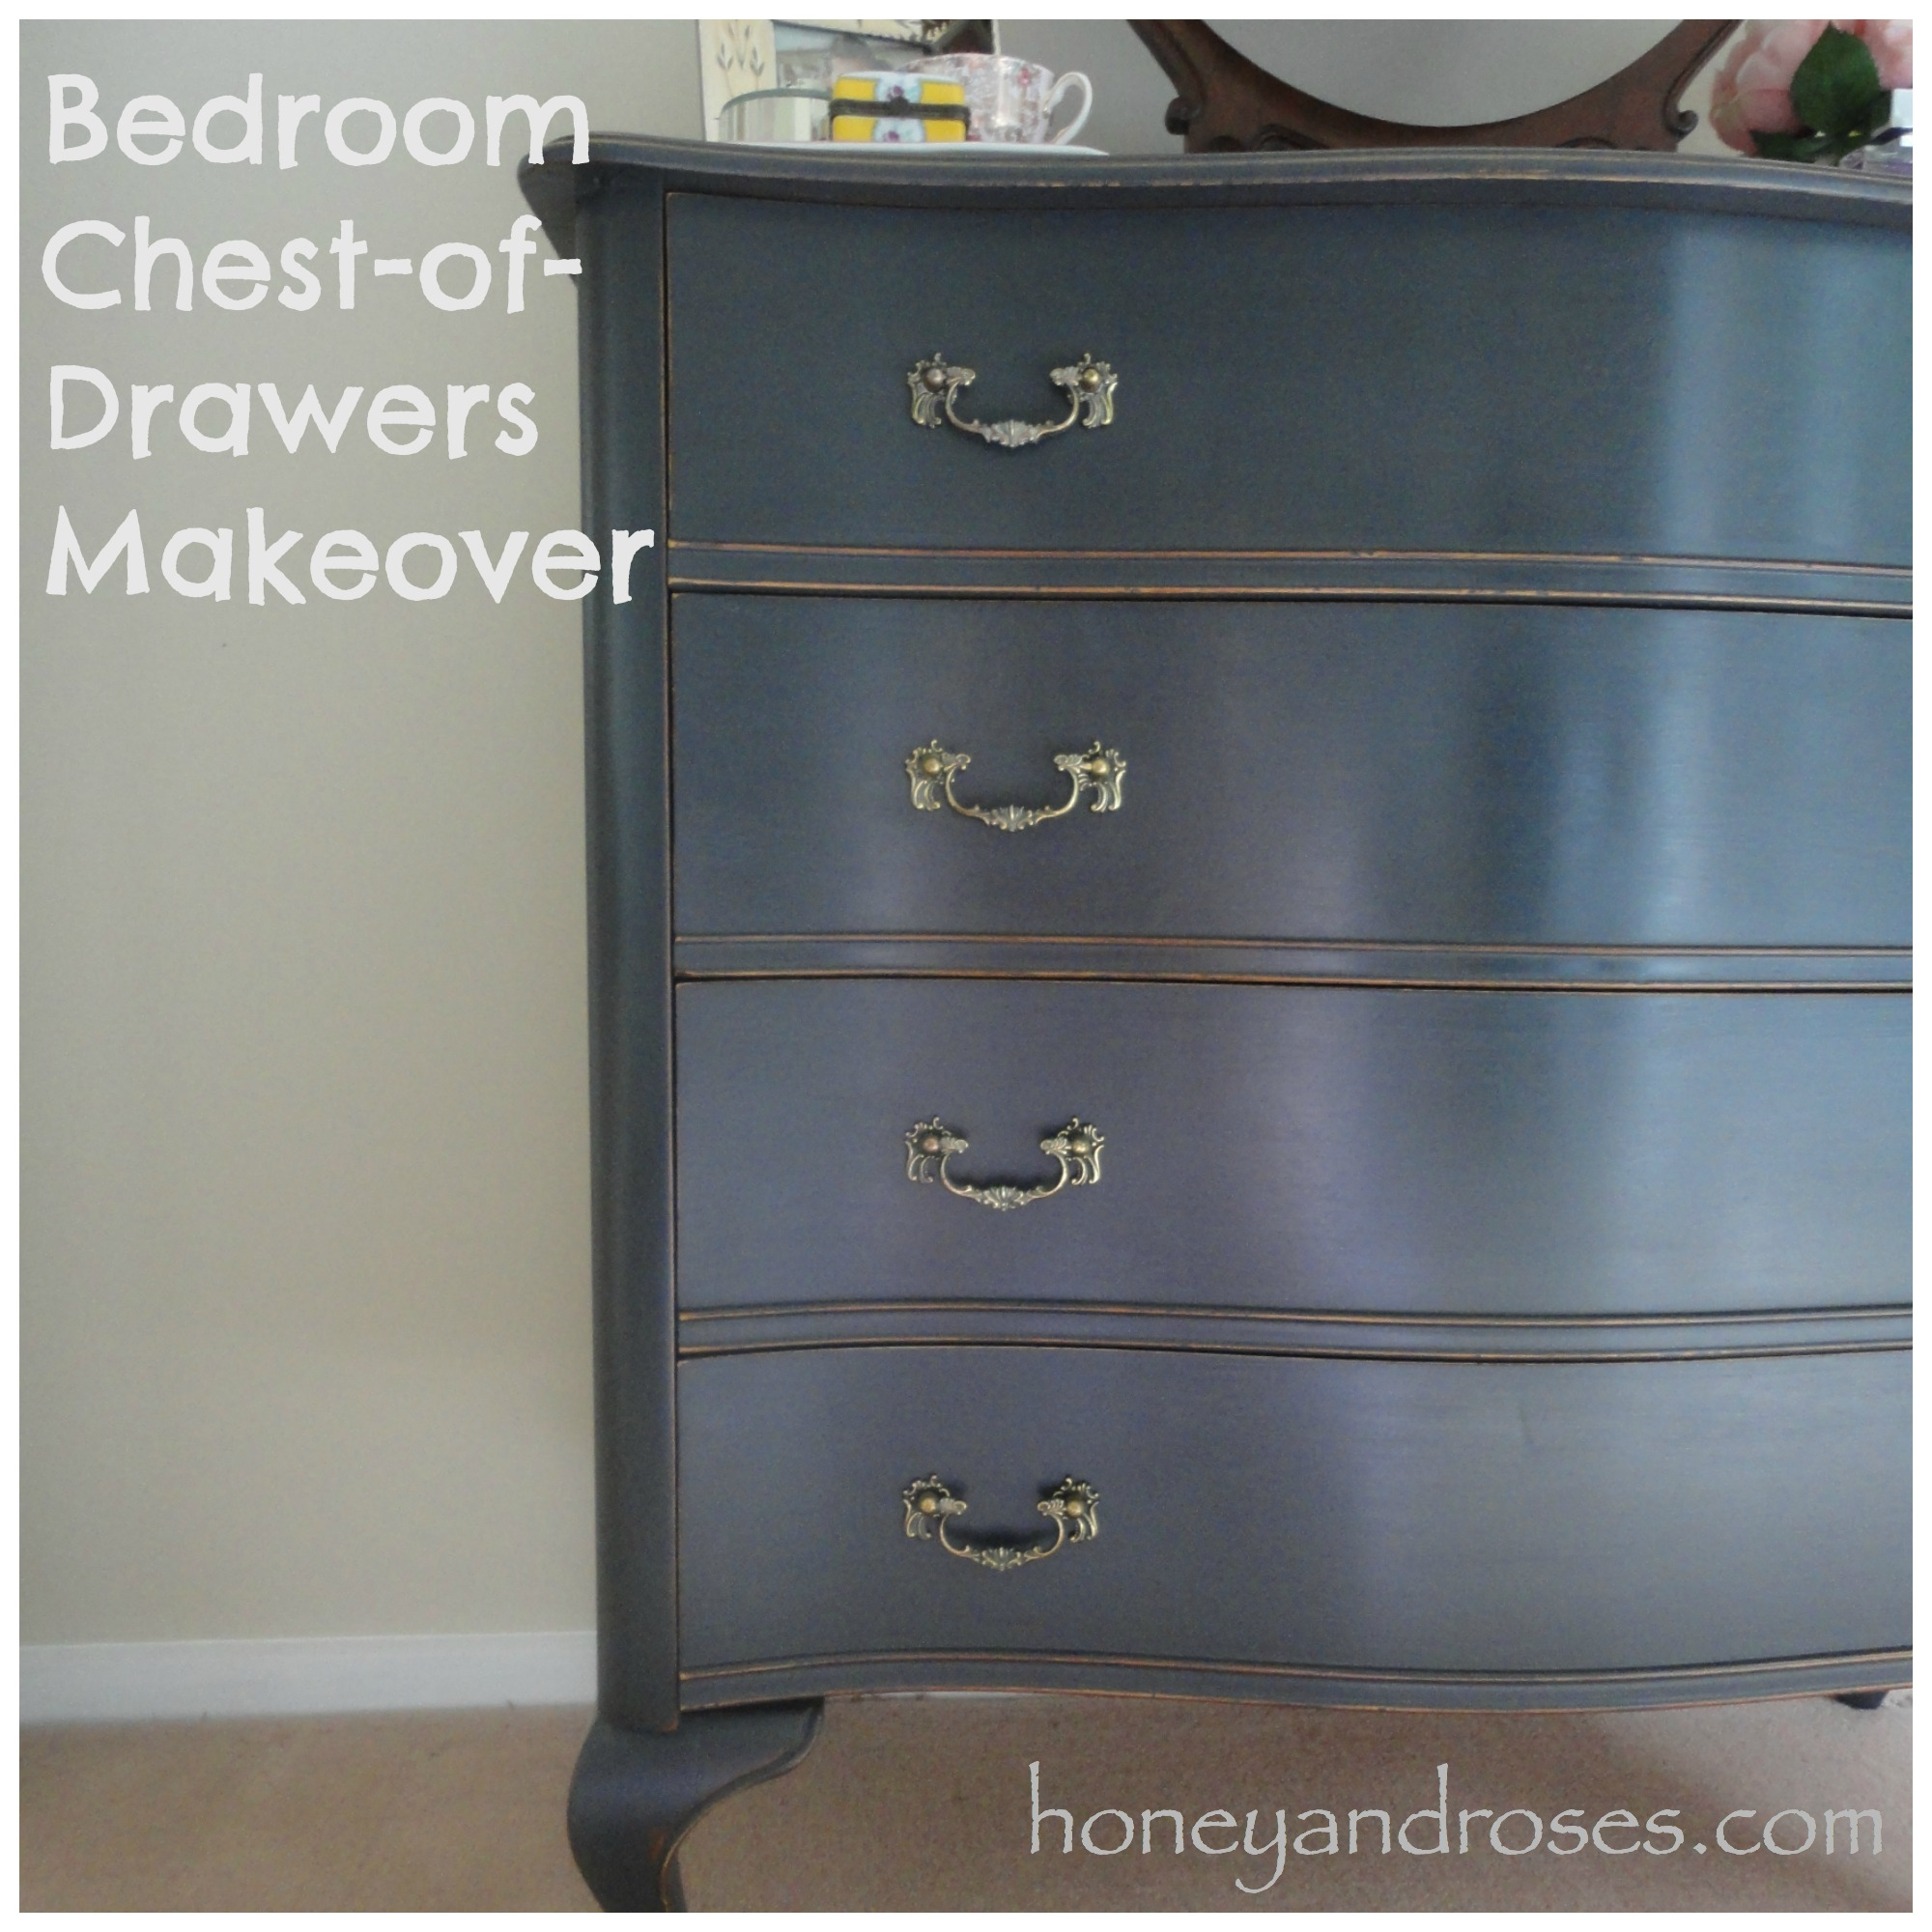 Bedroom Chests Of Drawers: Bedroom Chest-of-Drawers Makeover « HONEY & ROSES